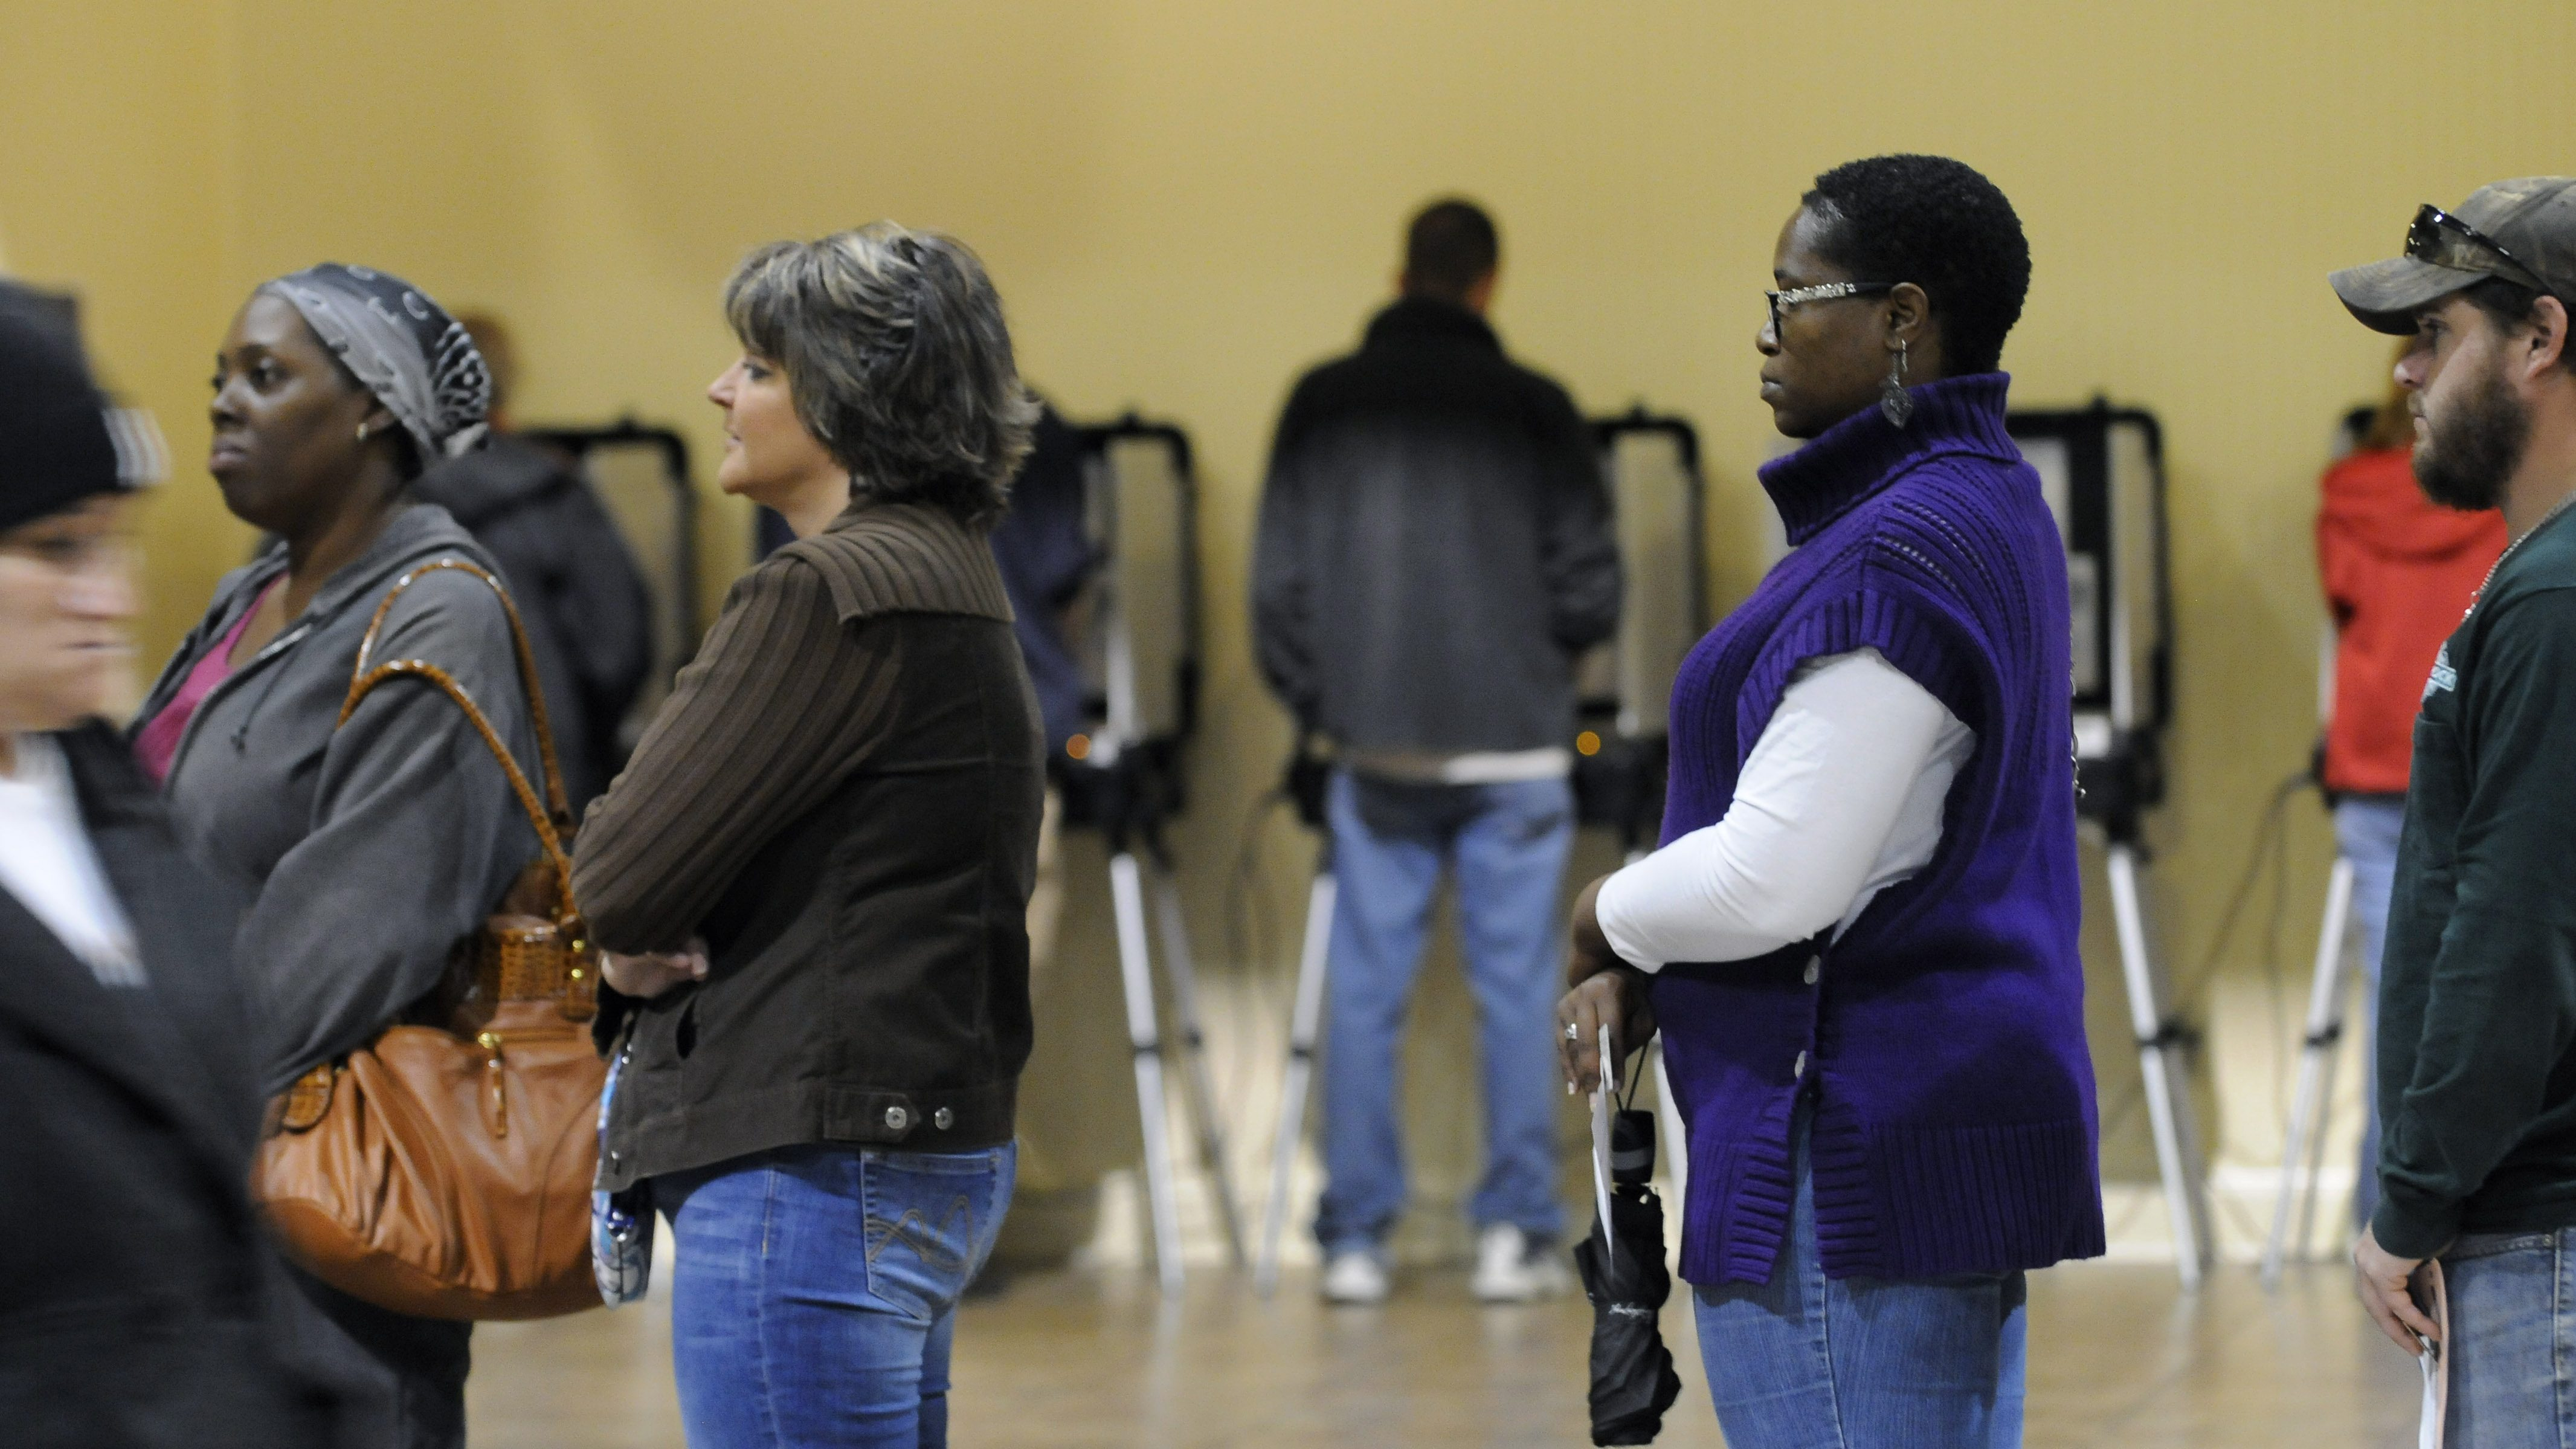 Voters in line in Georgia, United States